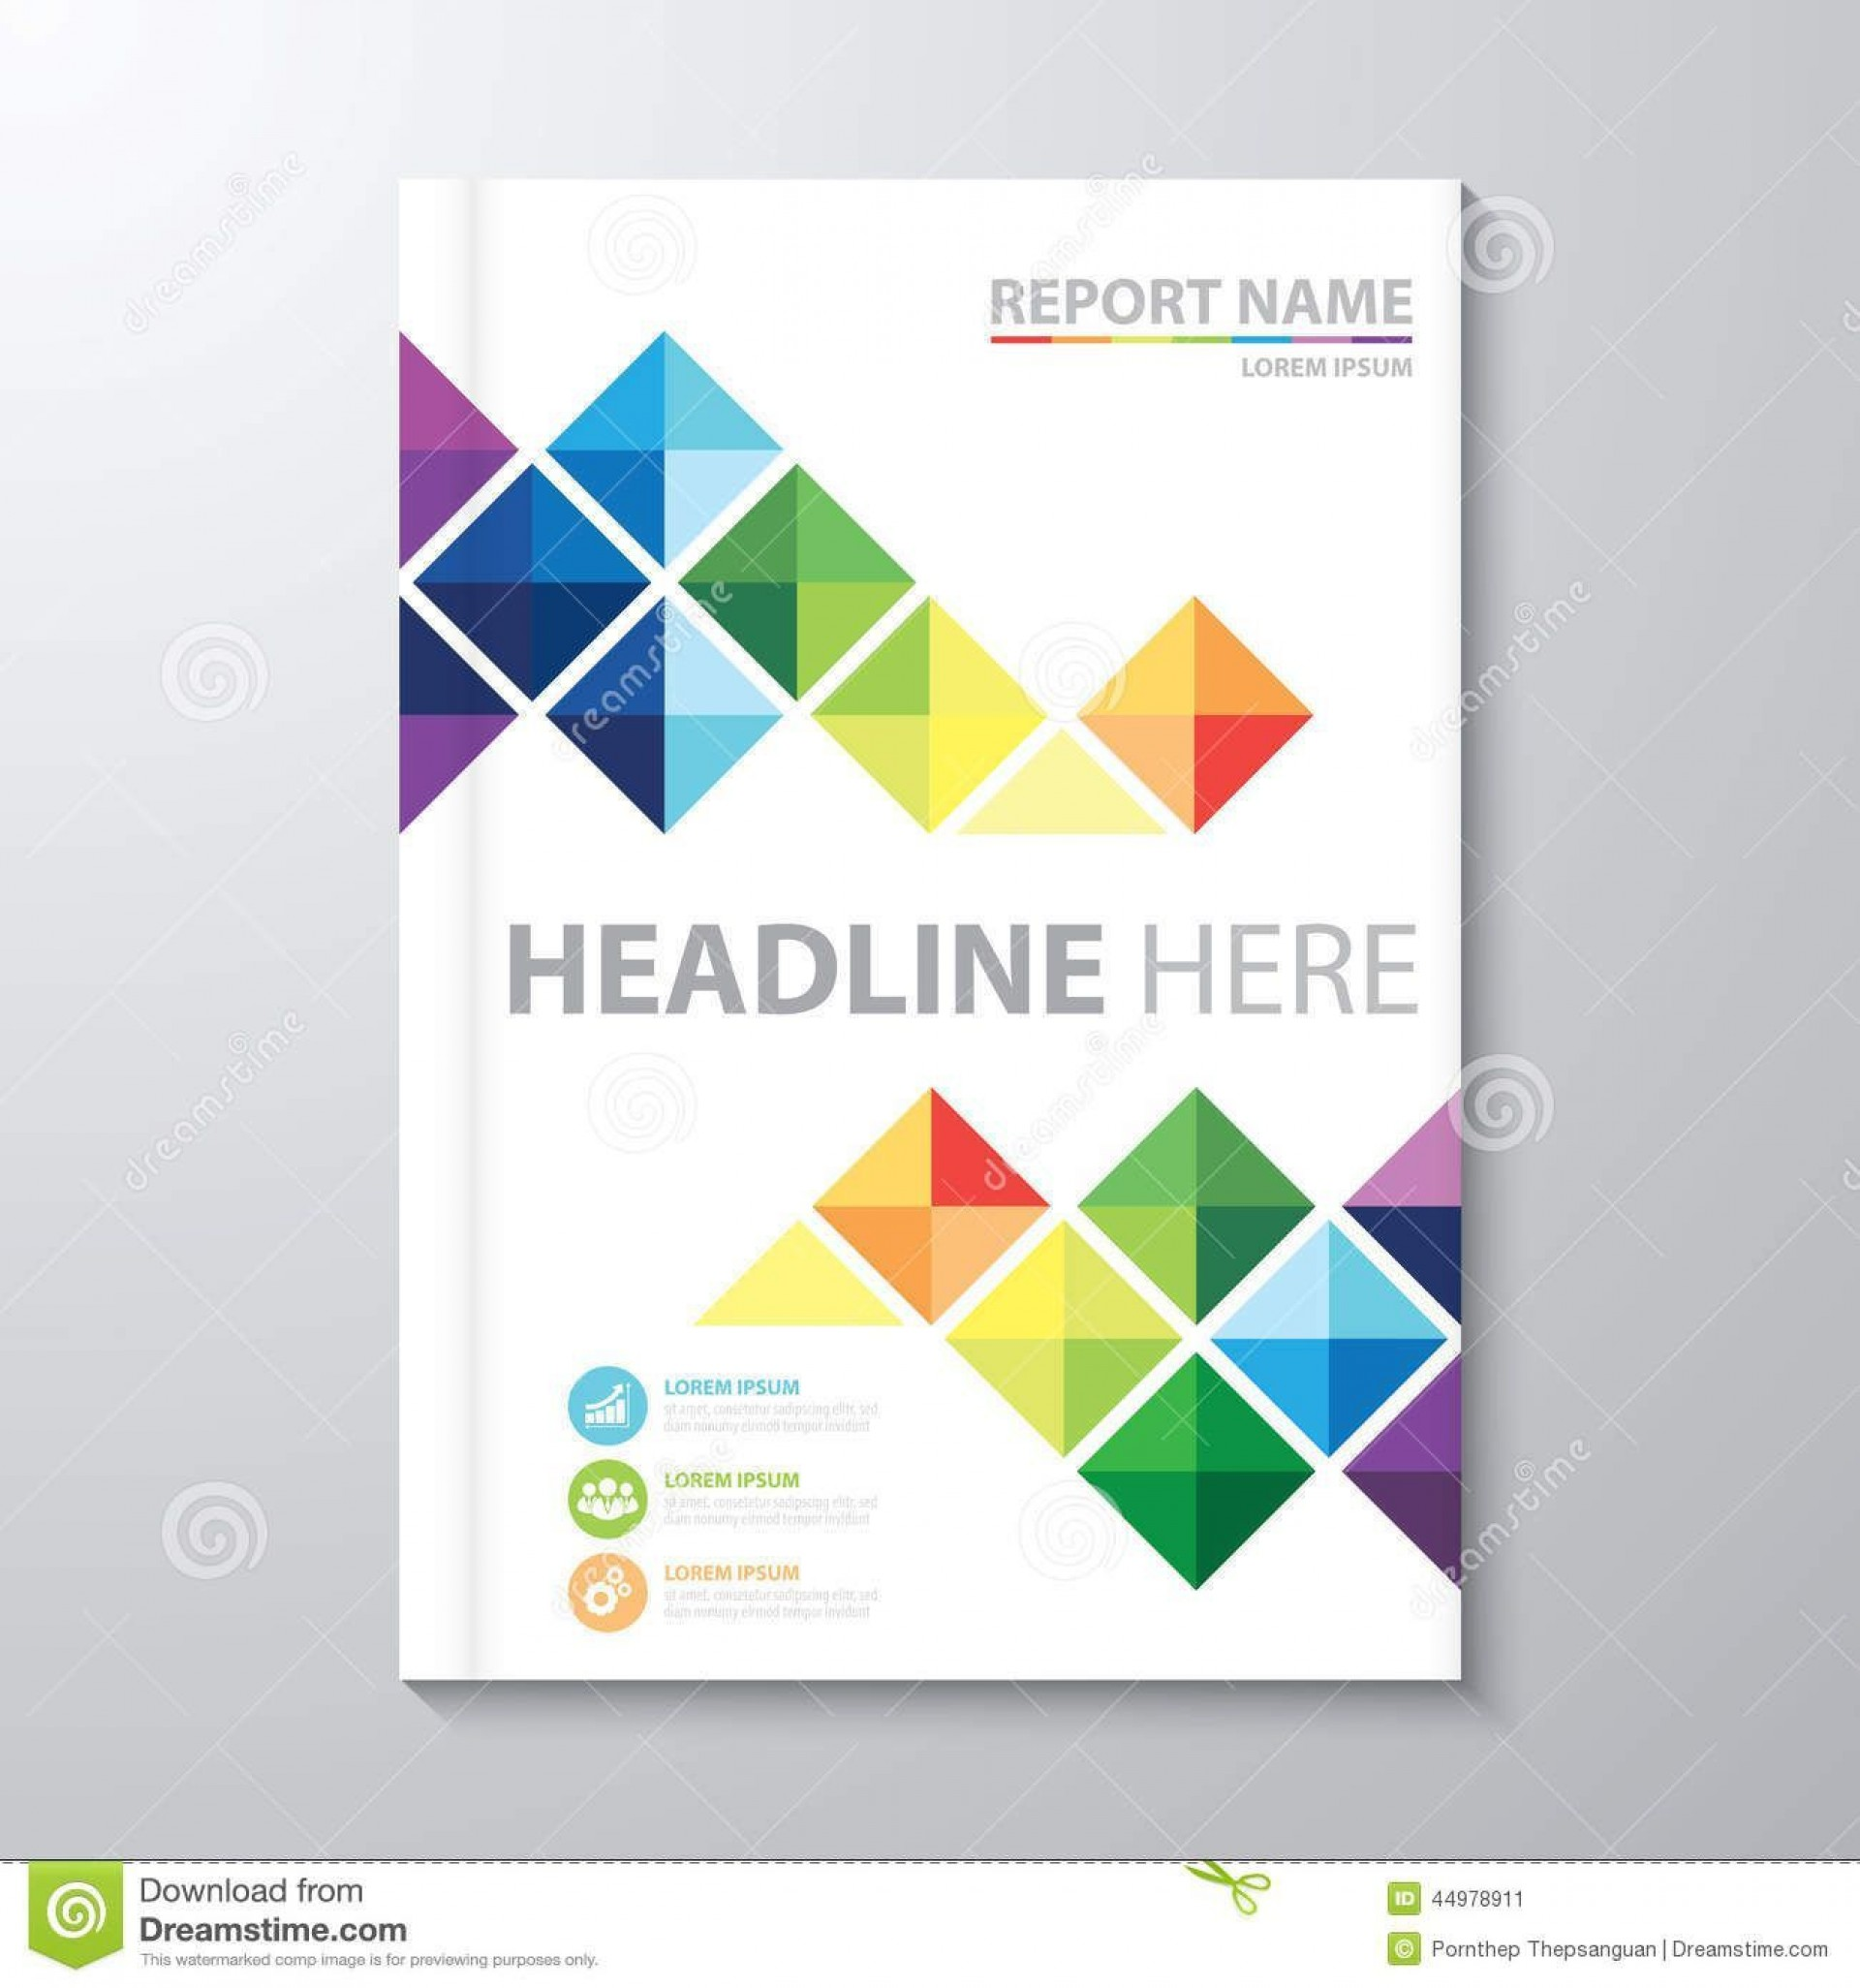 001 Incredible Free Download Annual Report Cover Design Template Example  Indesign In Word1920